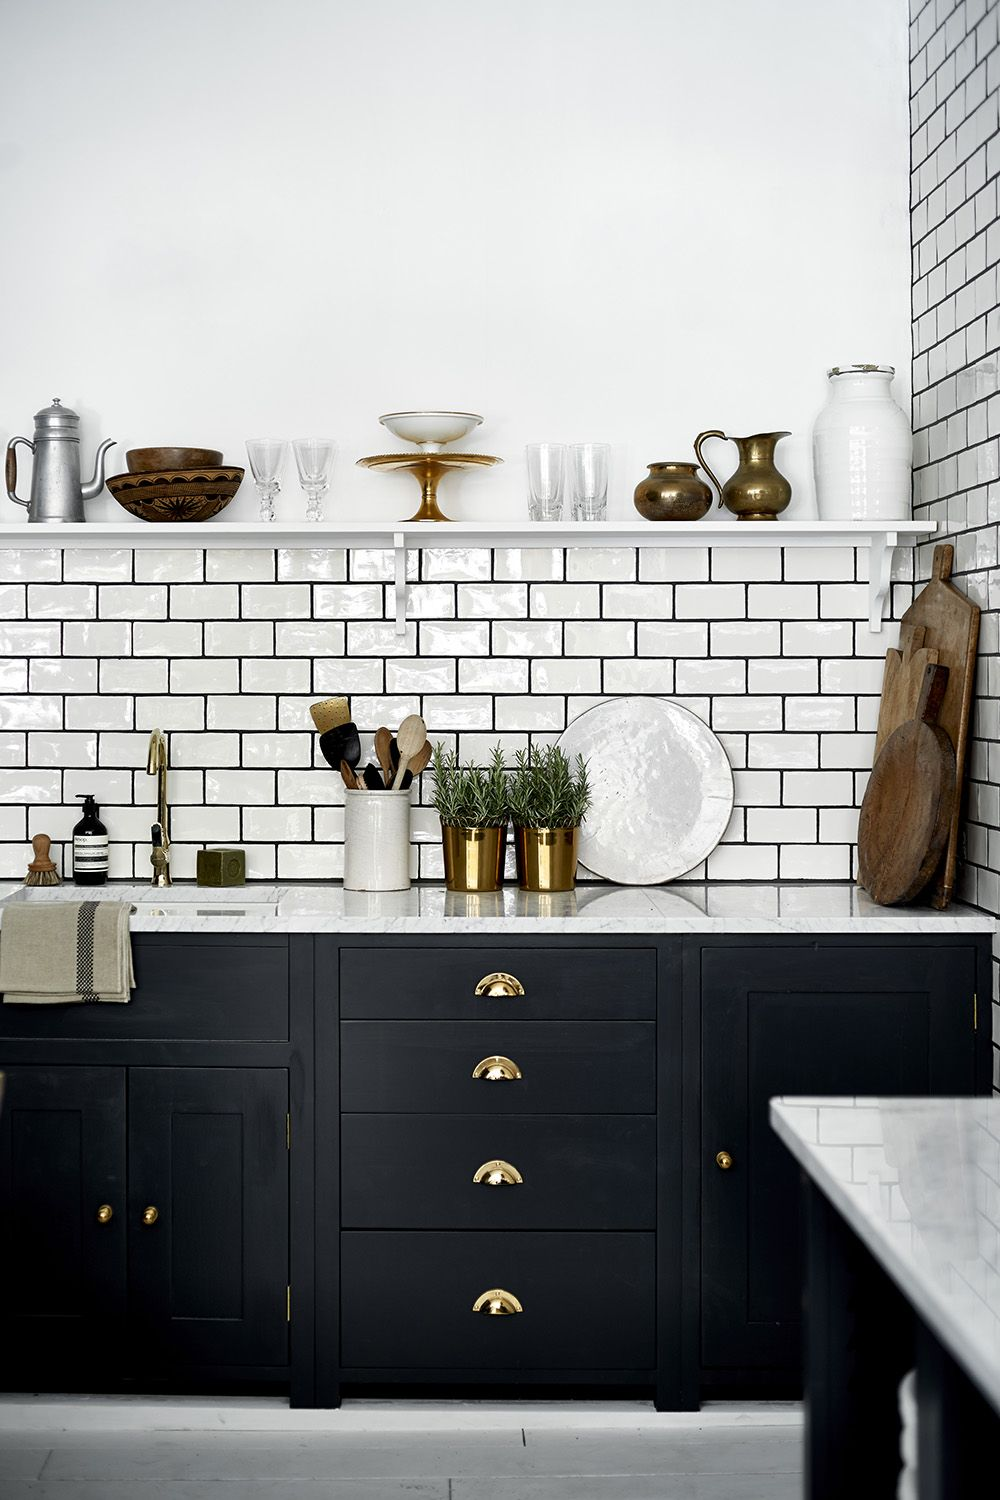 Our suffolk kitchen painted in charcoal with brass handles subway tiles our suffolk kitchen painted in charcoal with brass handles neptunekitchen suffolkrange dailygadgetfo Gallery